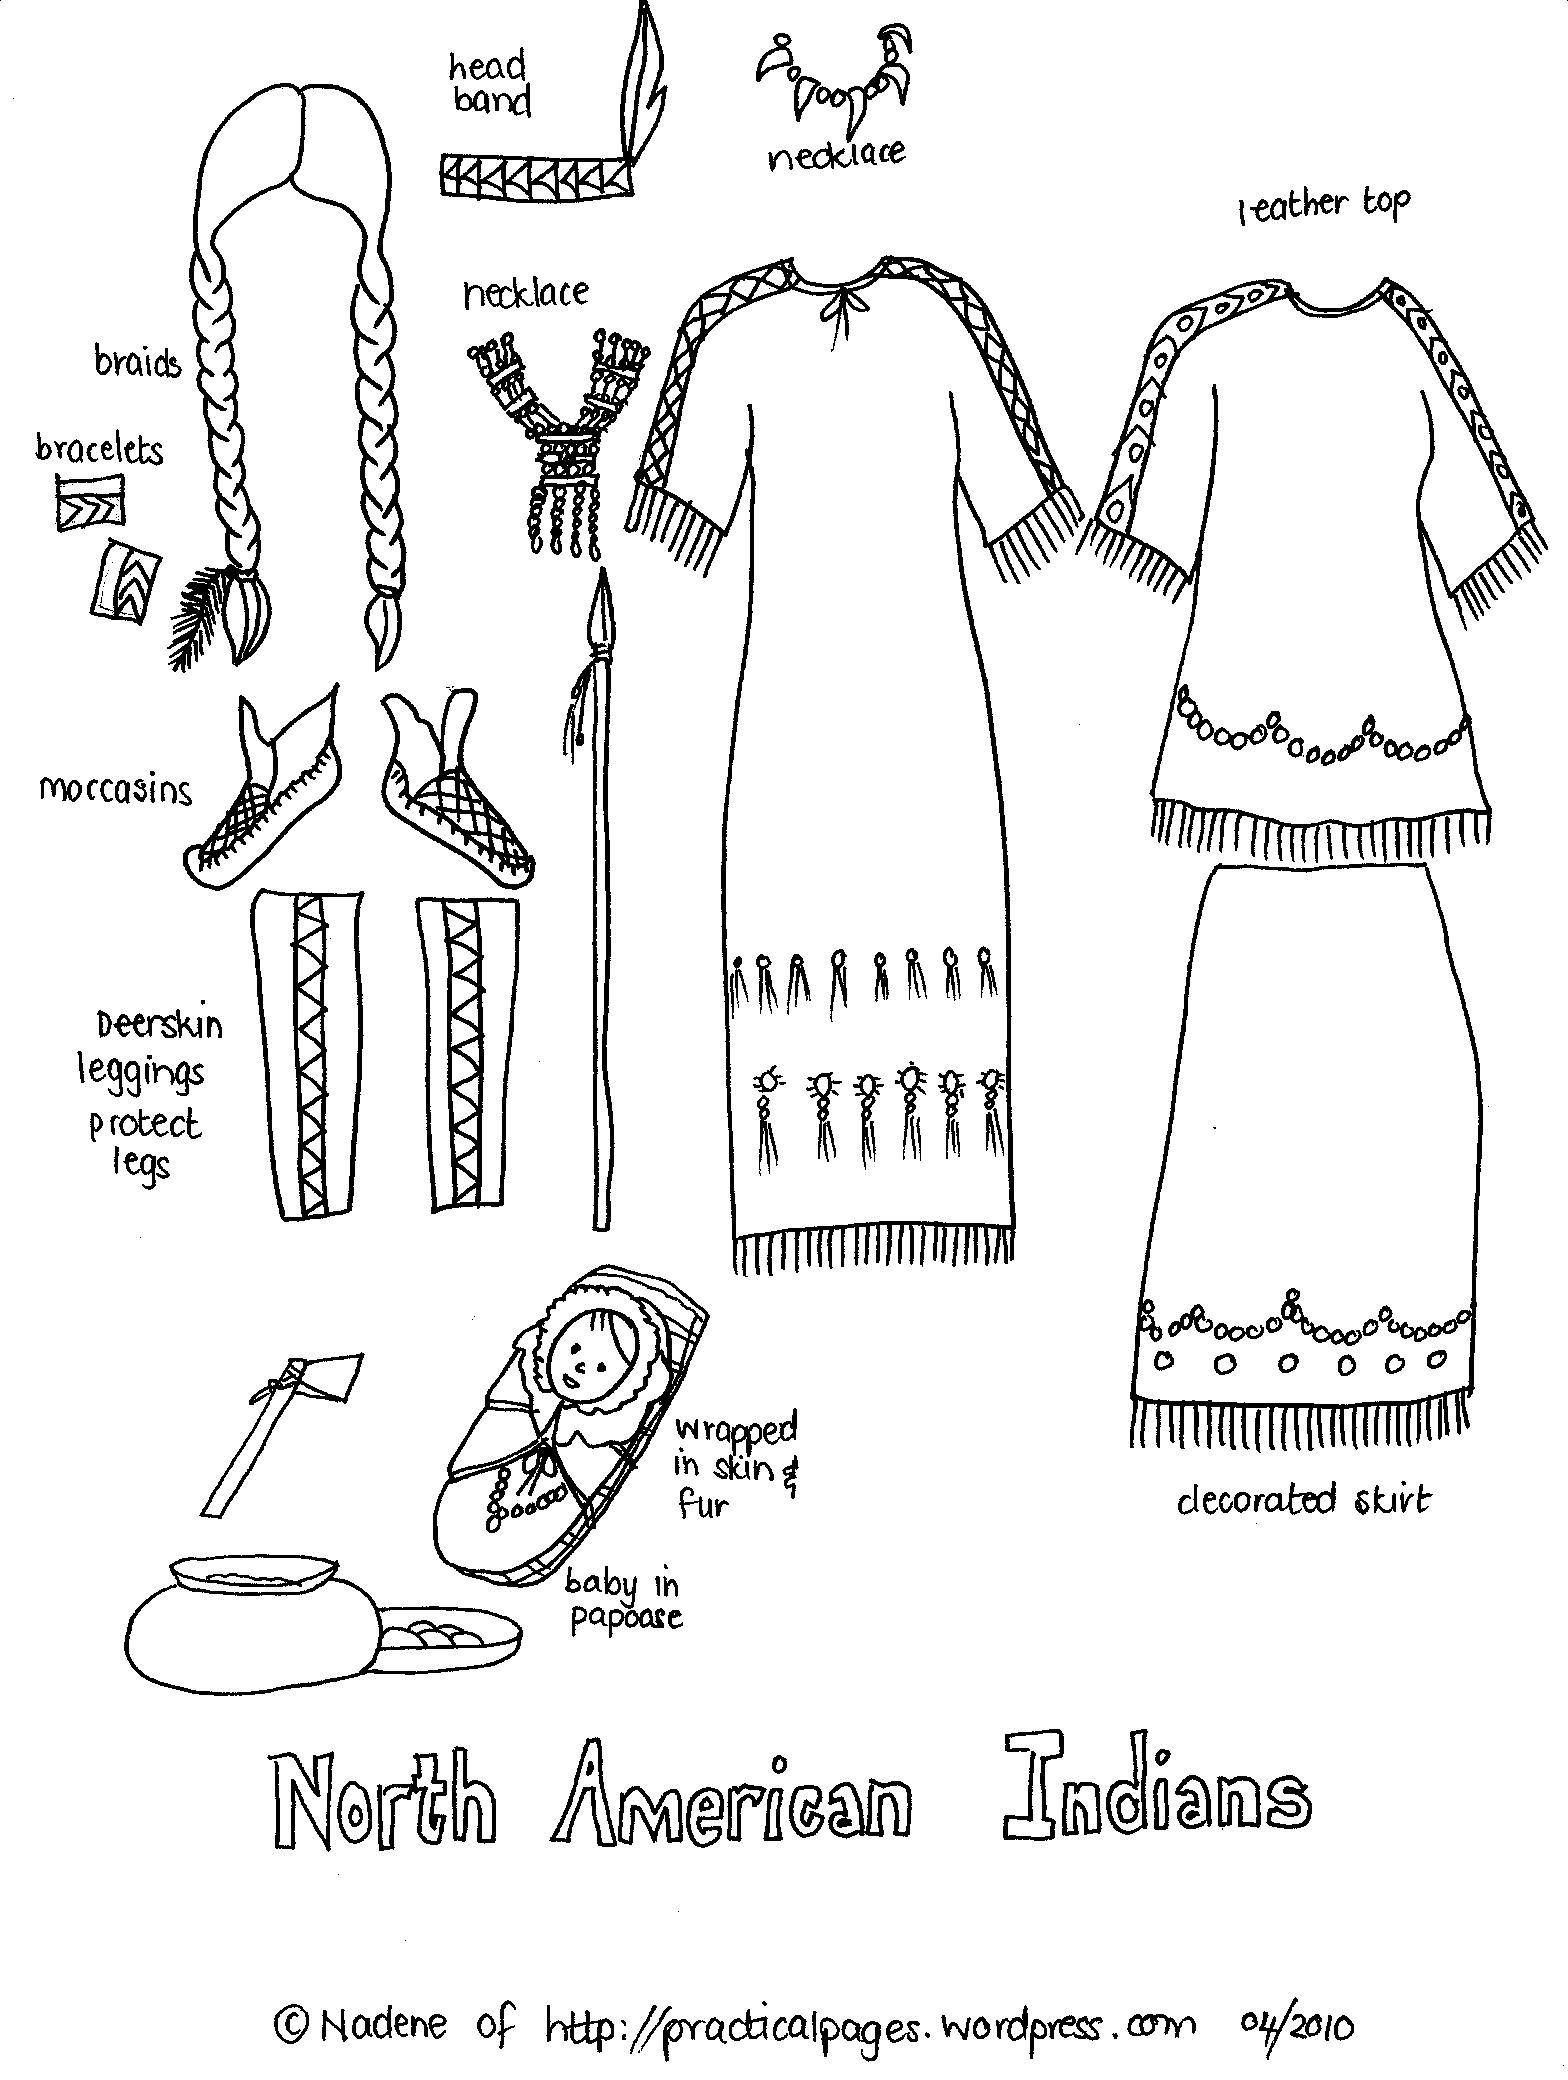 Paper Dolls Of Ancient Japan China India And North American Indians